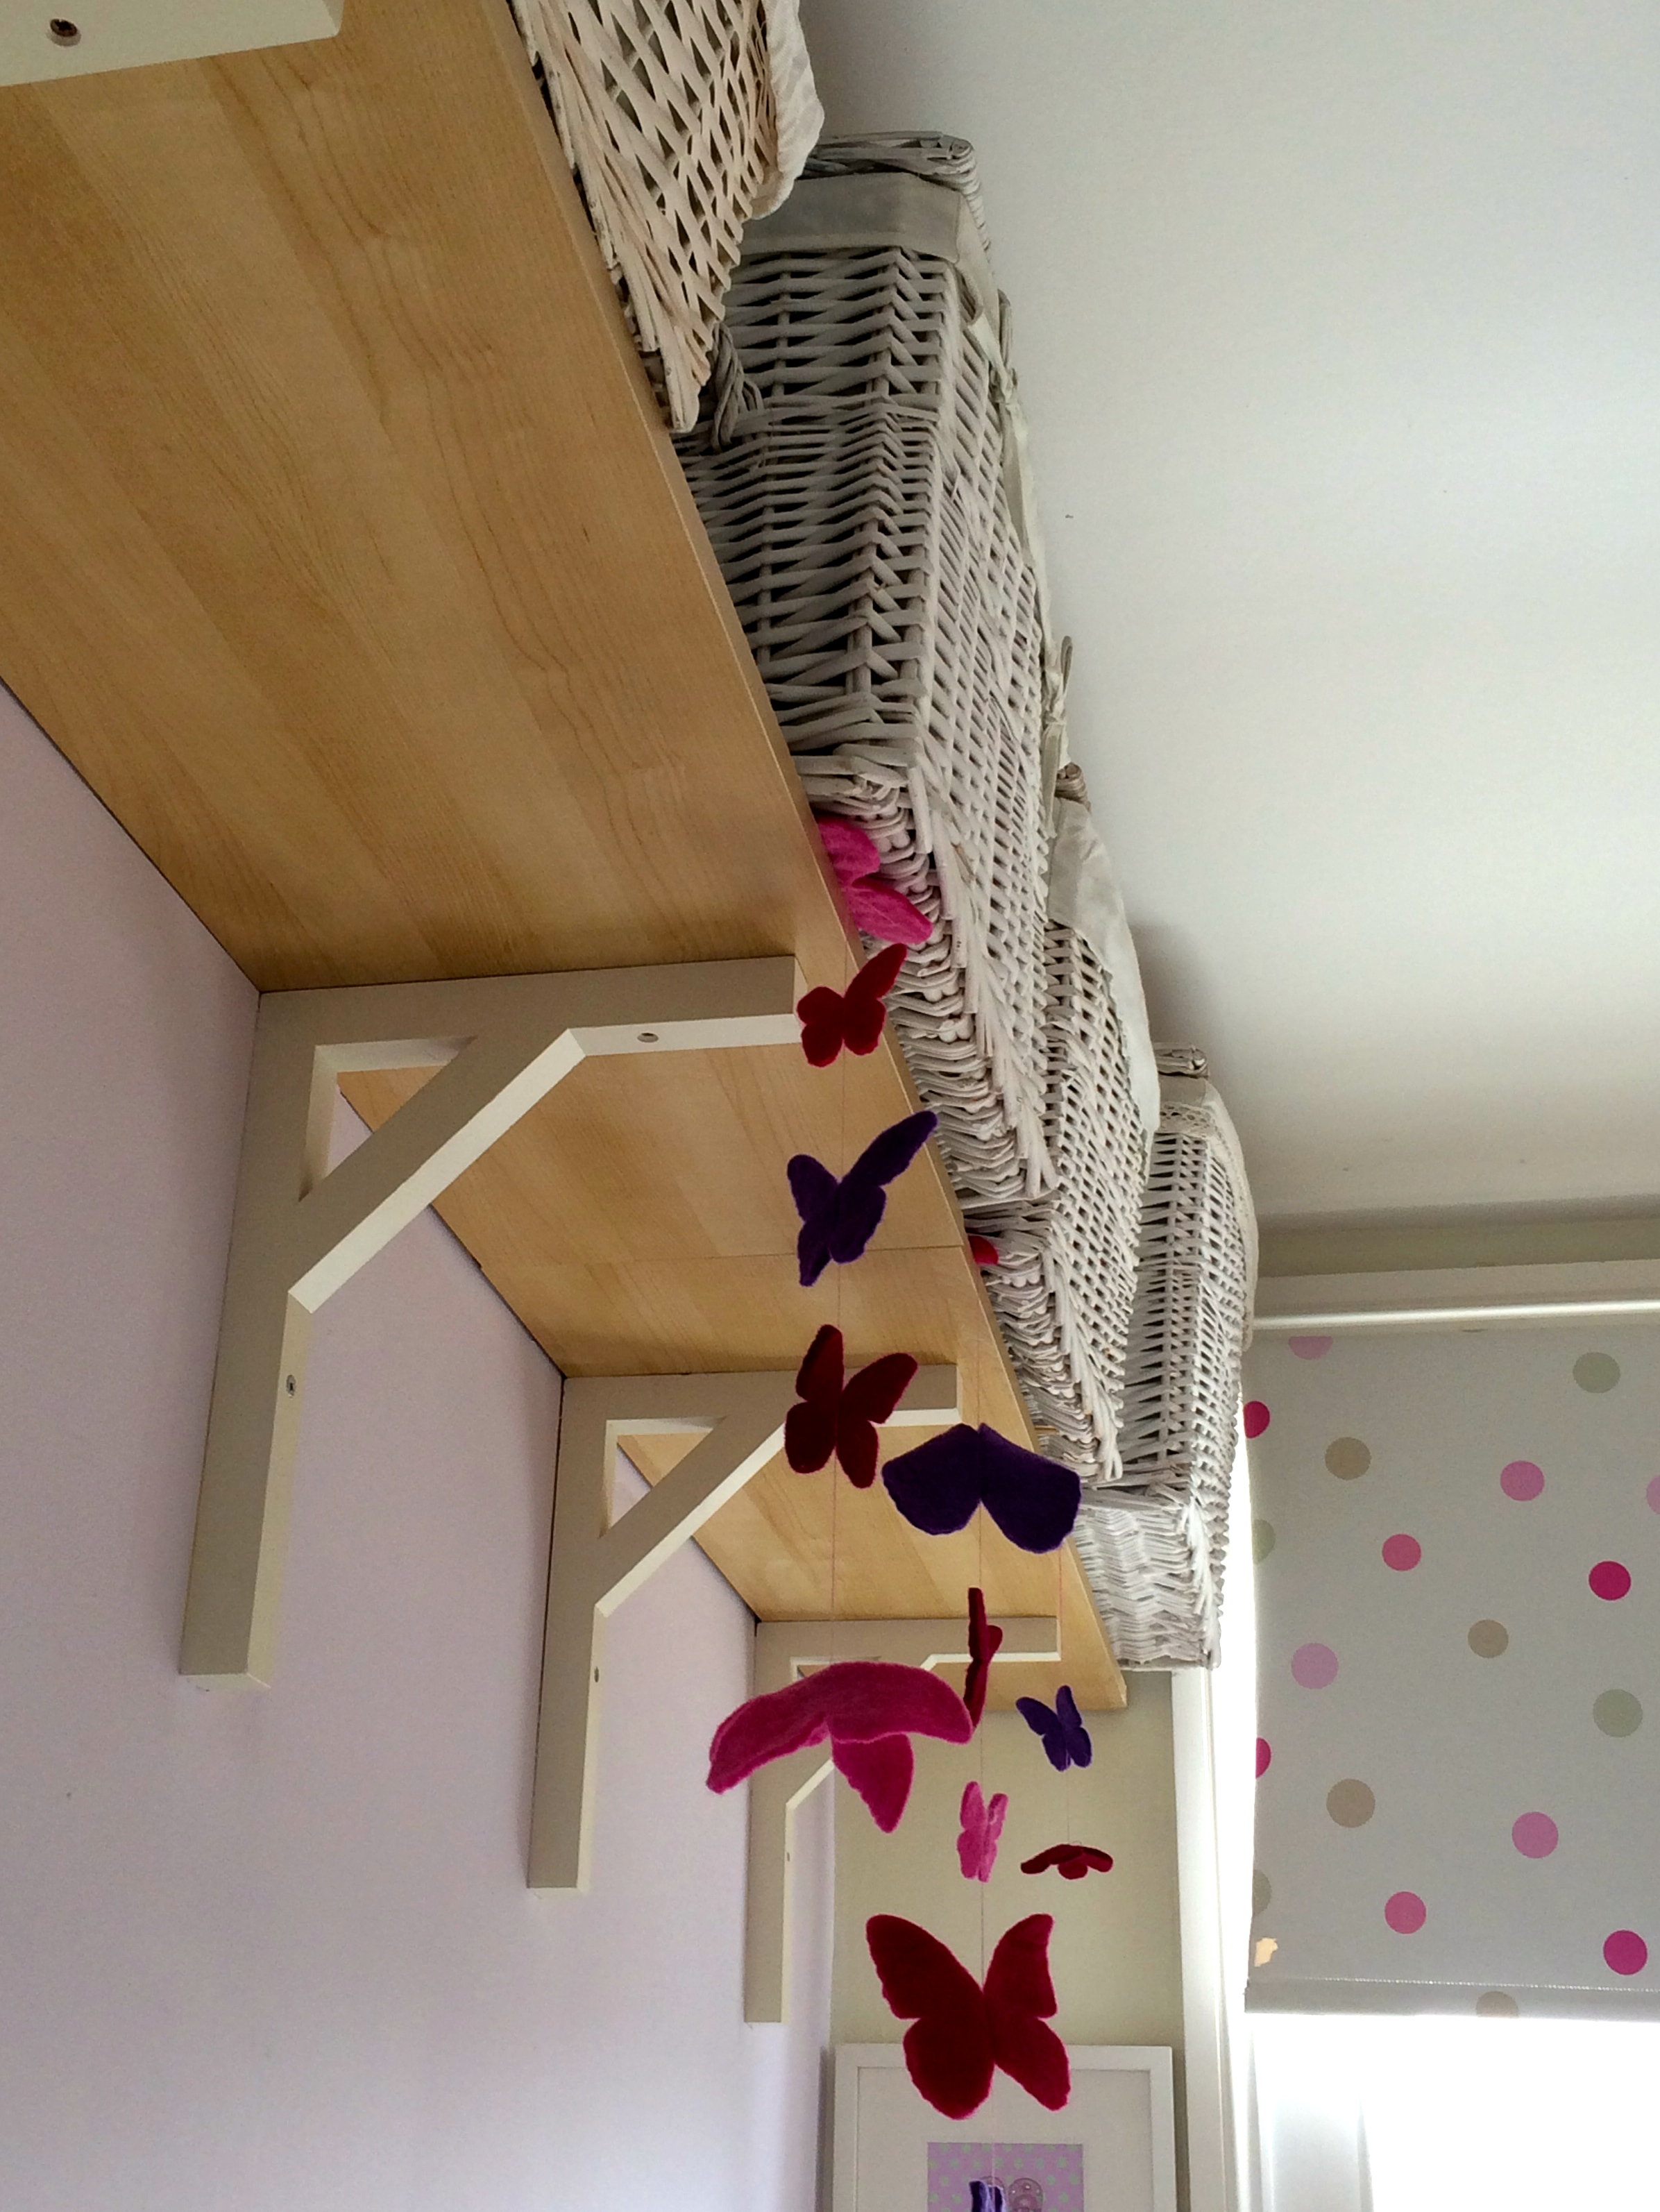 Space saving ideas for a box room nursery New Mumblings